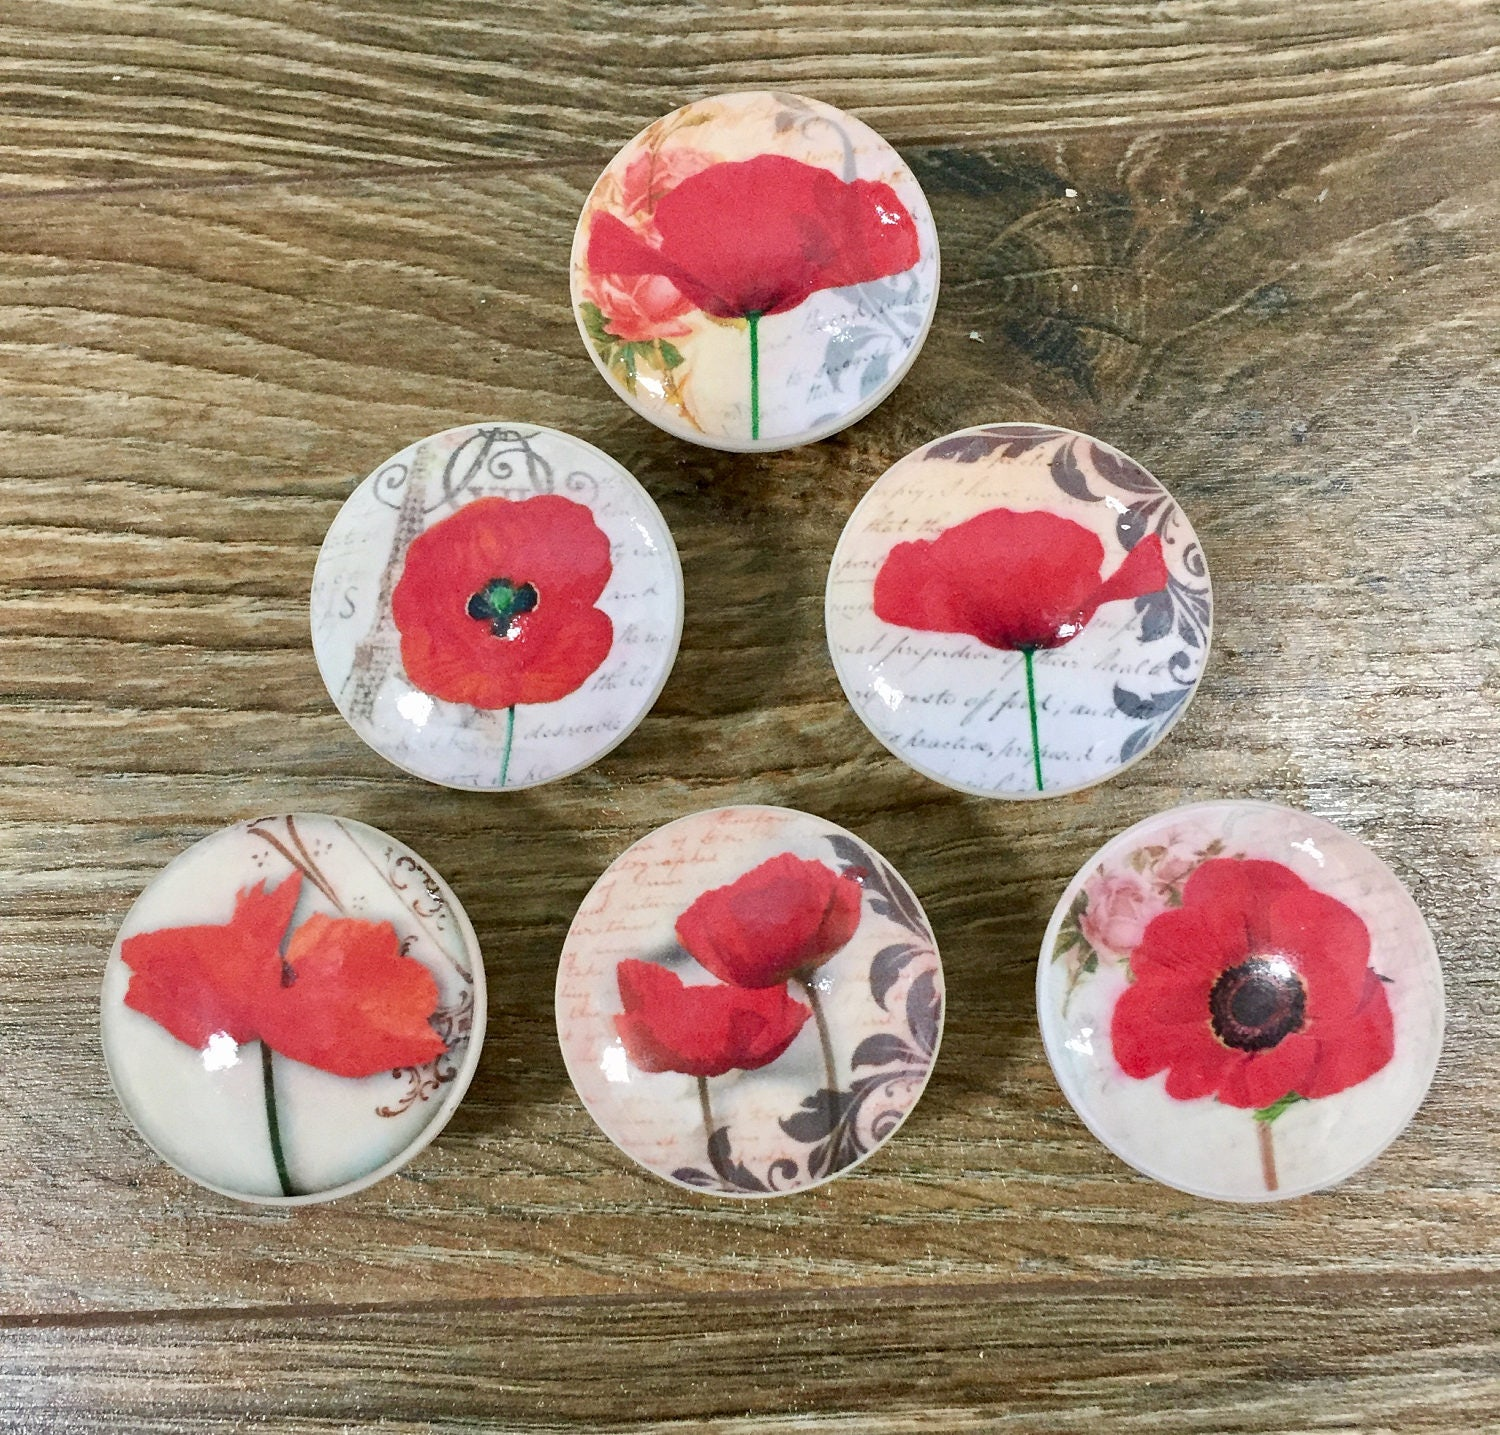 1 5 Inch Red Poppy Cabinet Knobs Drawer Pulls Floral Flowers Kitchen Decor From